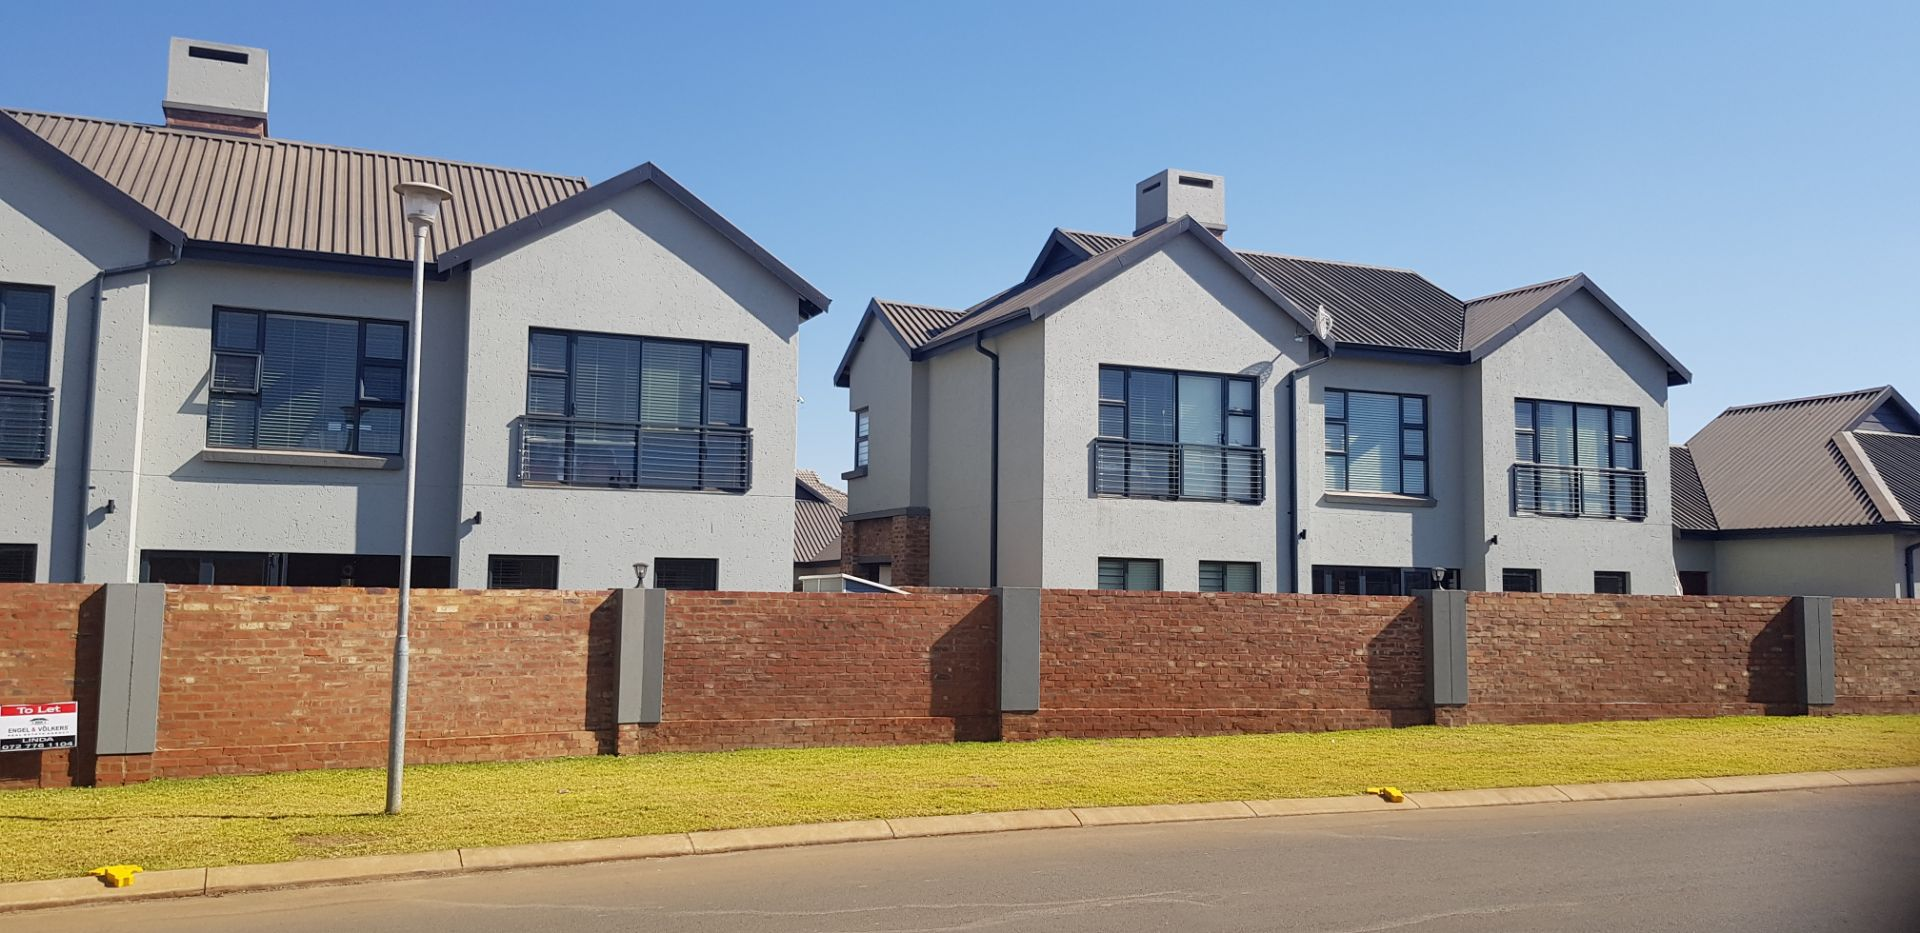 House in Lifestyle Estate - 20190712_112619.jpg